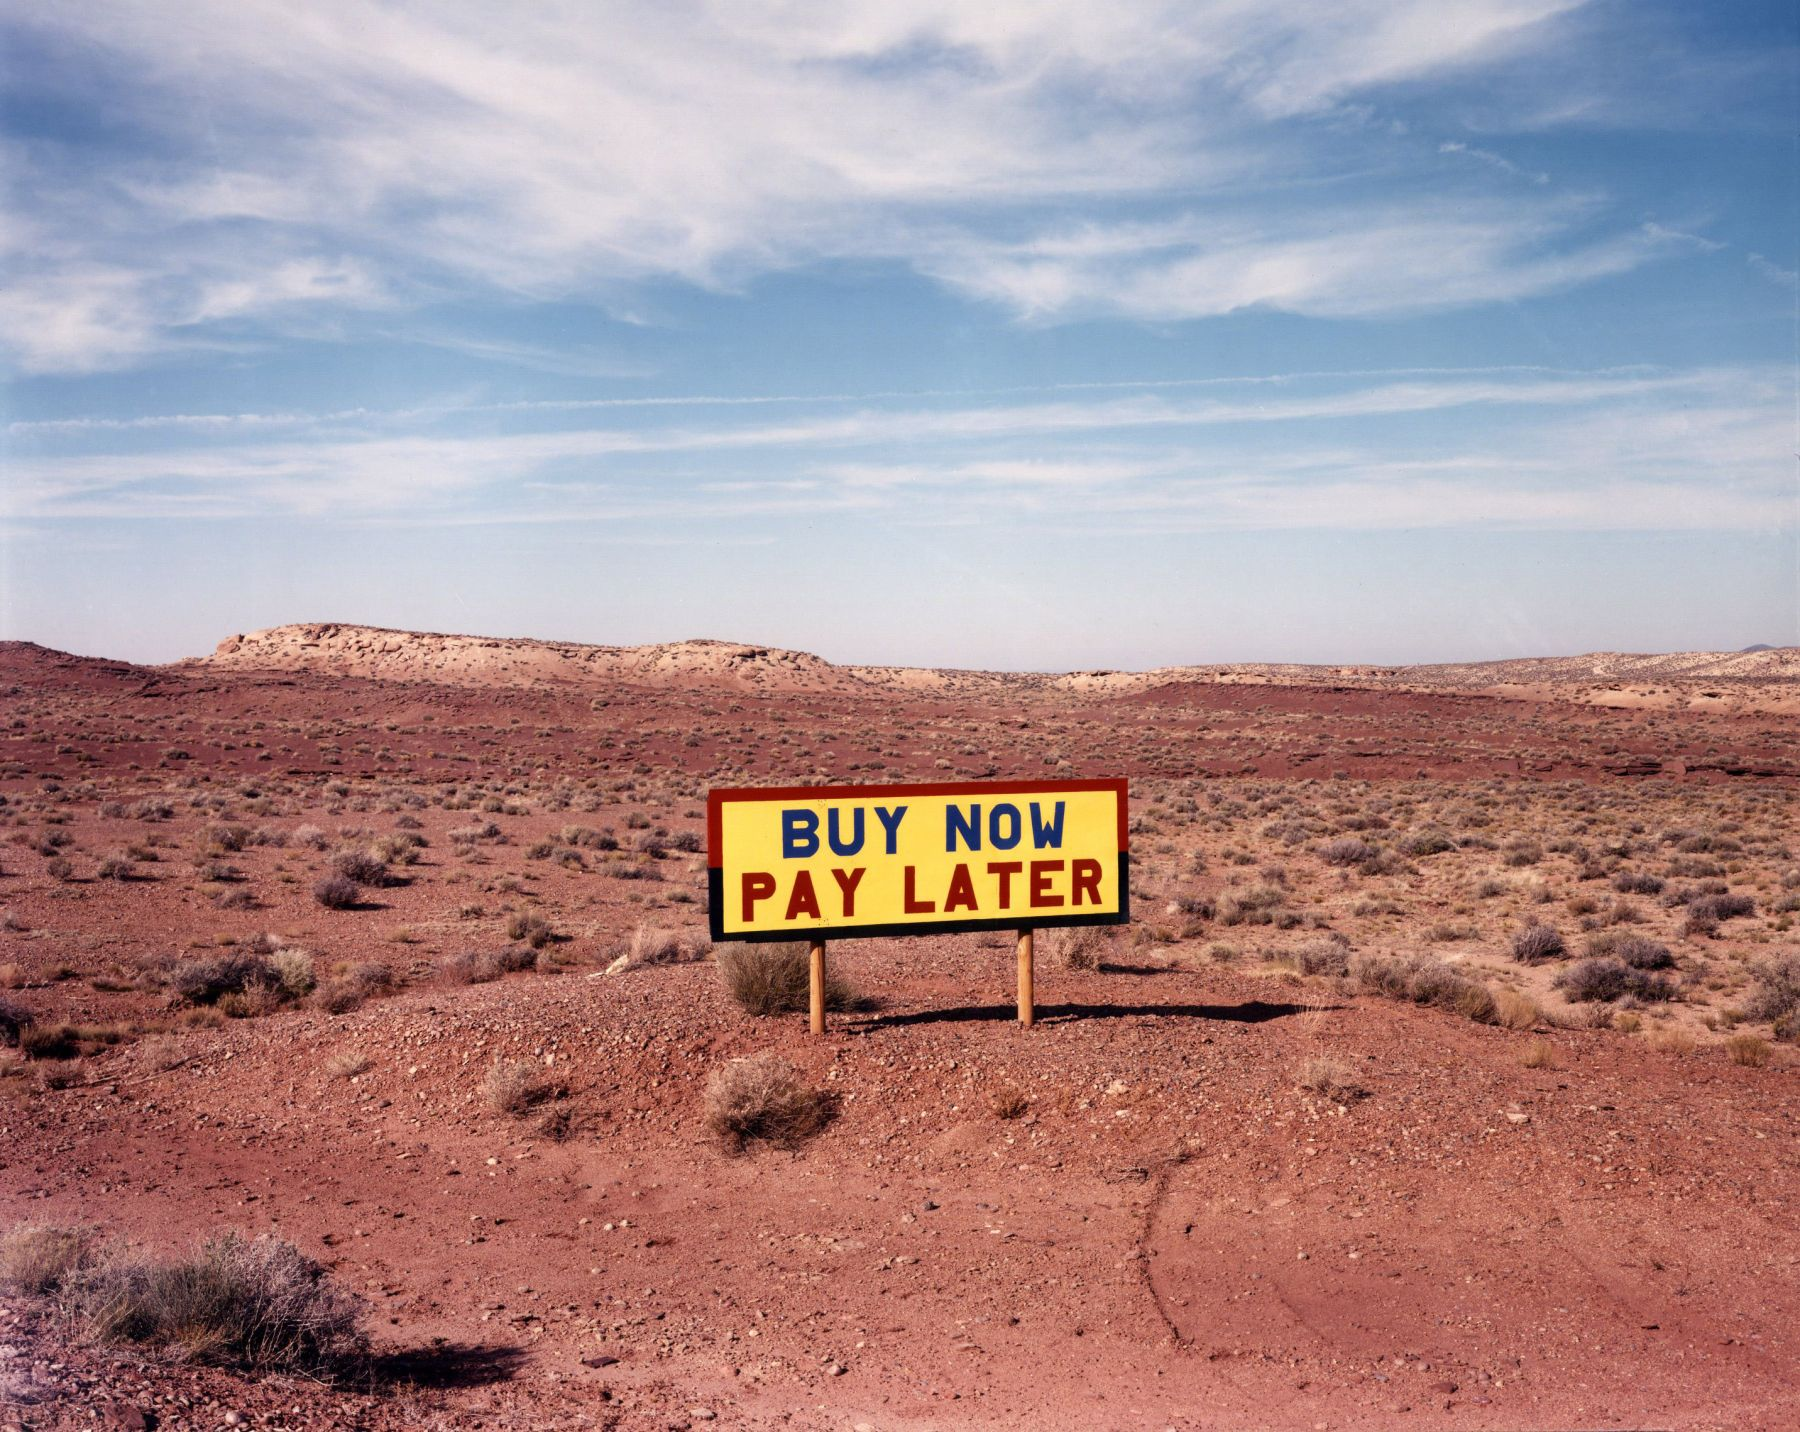 David Graham, Route 64 West of Route 89, AZ, 1986 © Laurence Miller Gallery